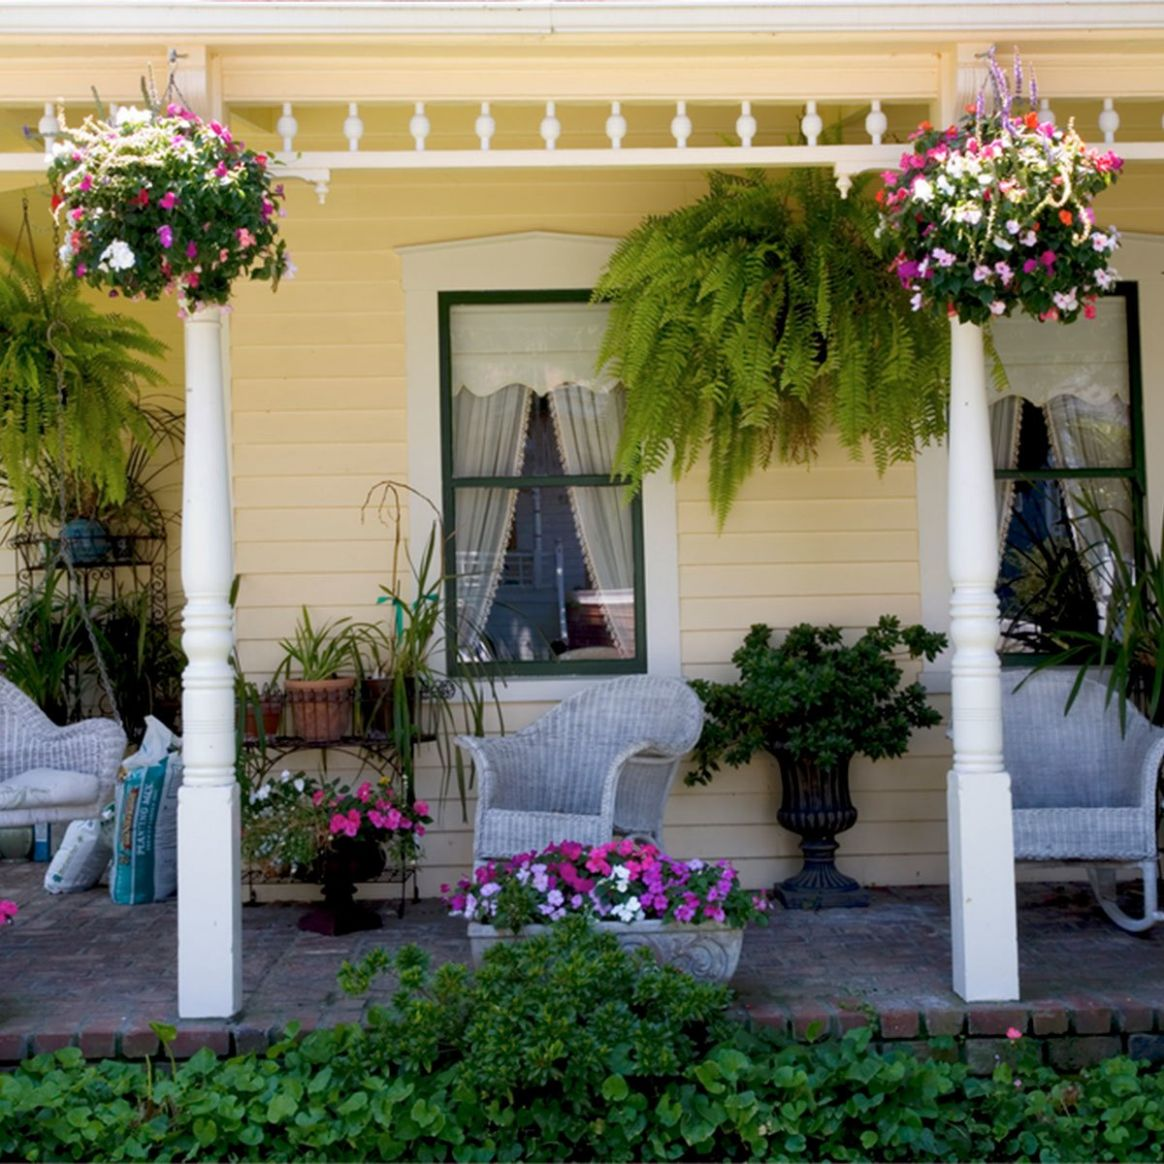 12 Front Porch Ideas and Décor for a More Welcoming Space - front porch decor with plants